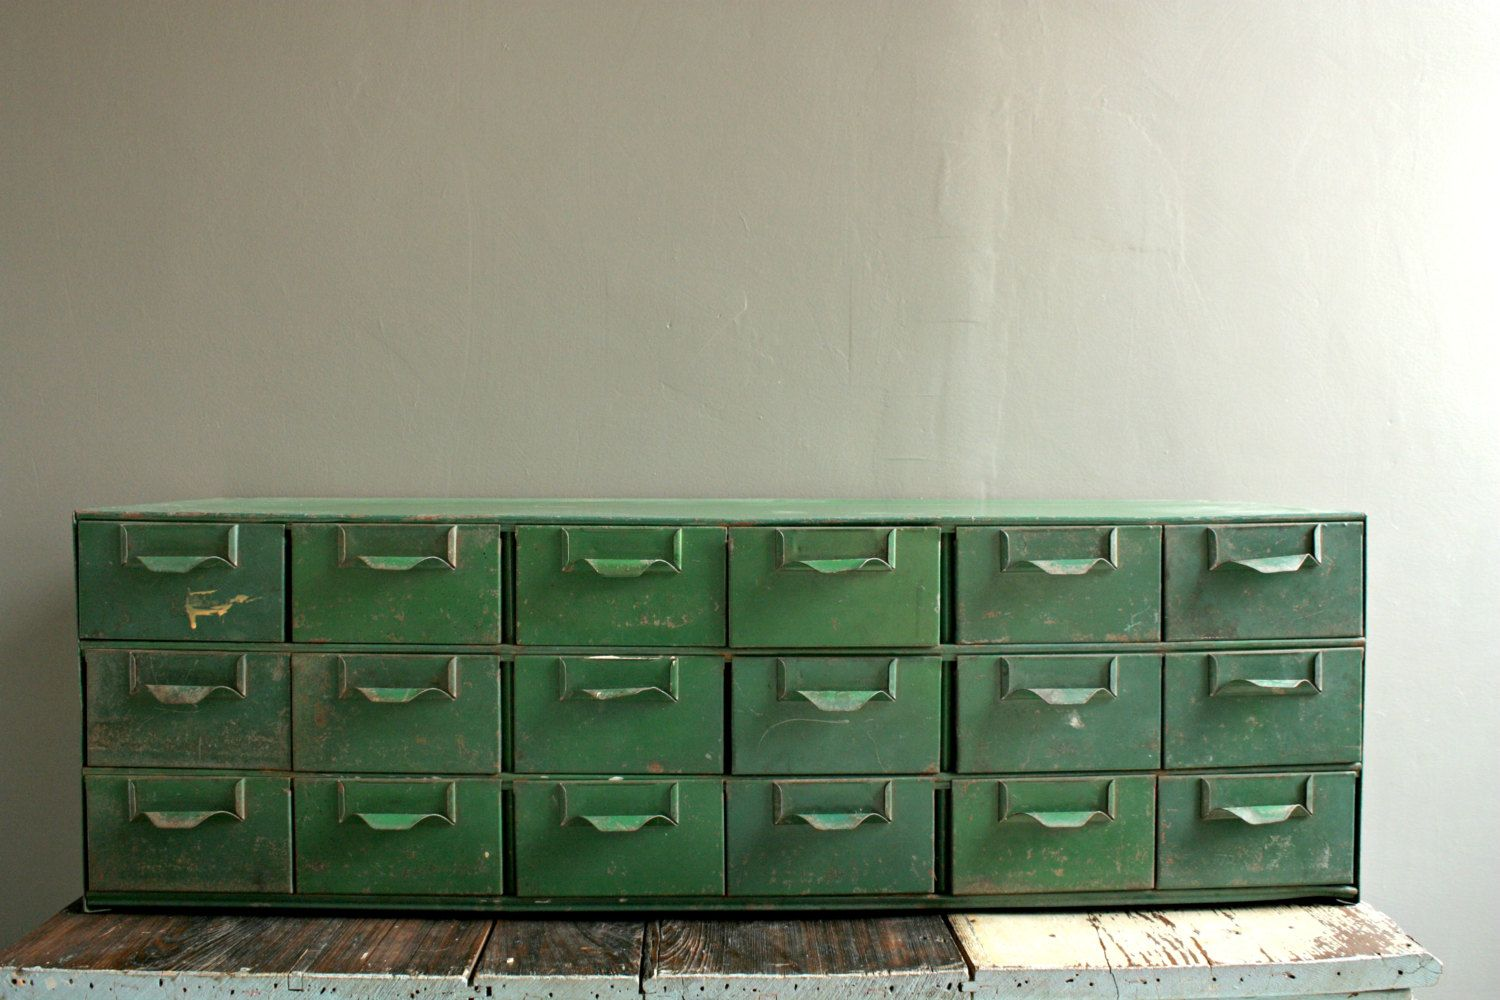 Vintage Card Catalog 18 Drawer File Cabinet by OurVintageBungalow - Clean It Up, Prime It , Repaint It In An Emerald Green!!!! This